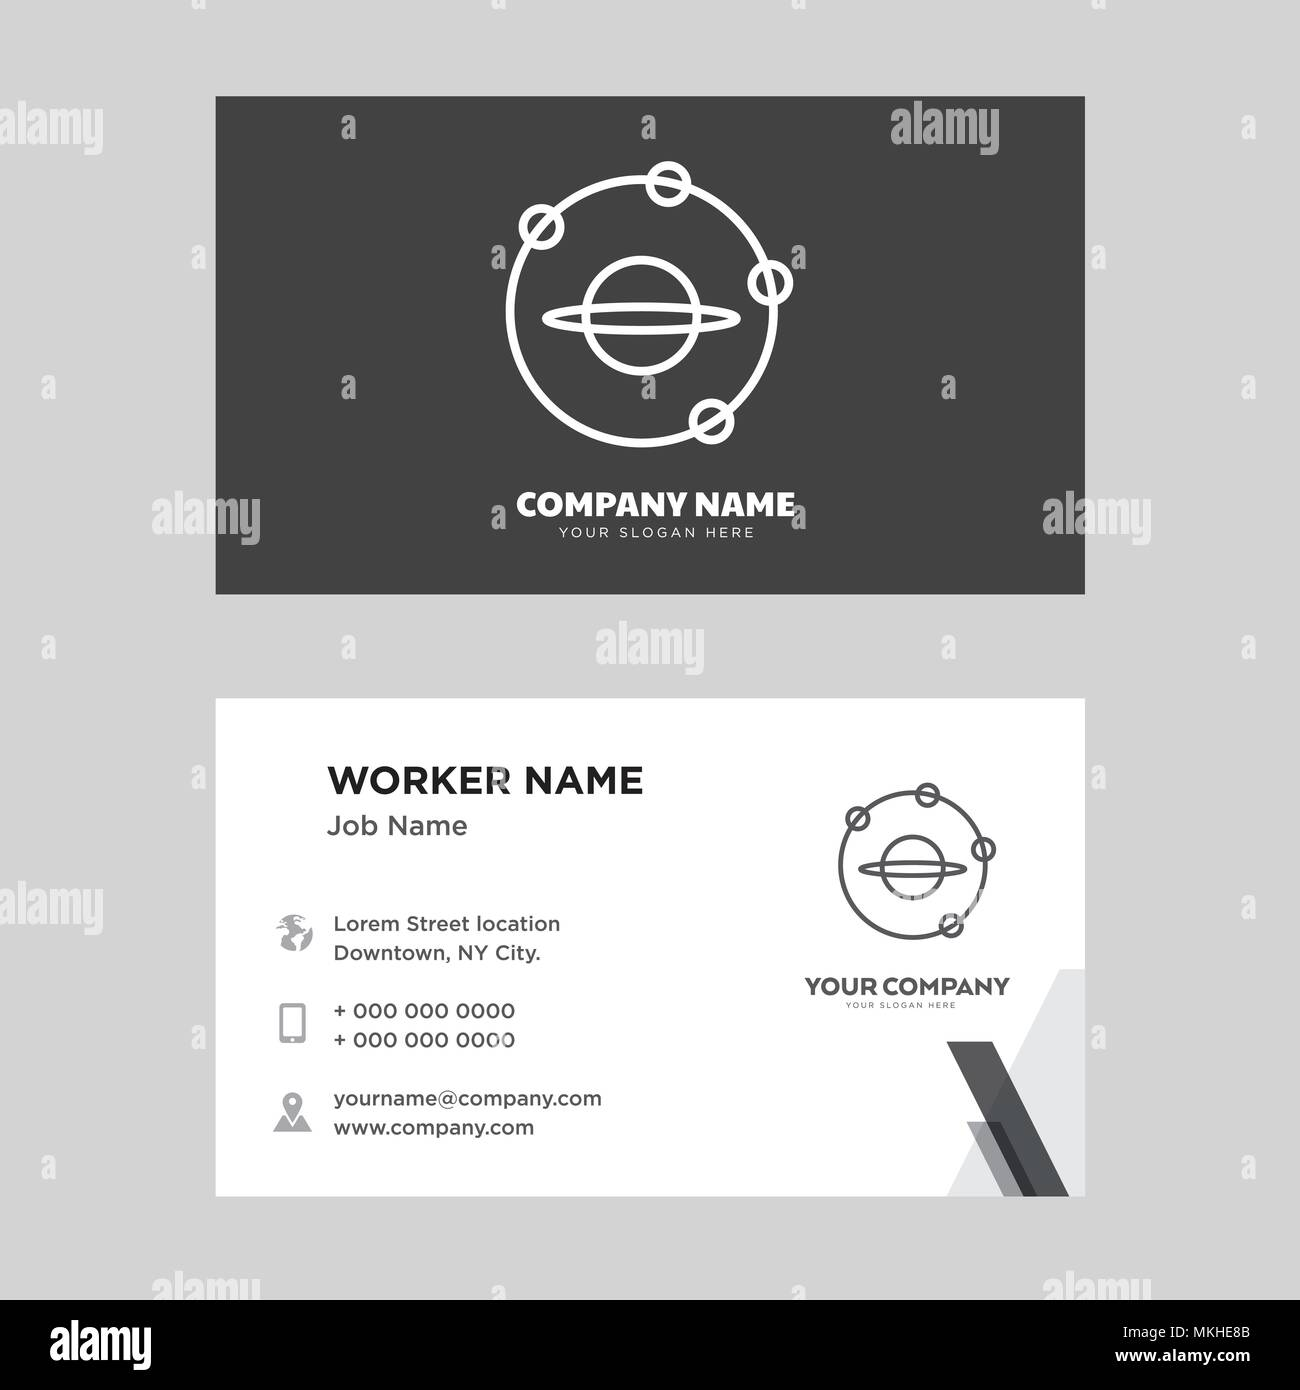 Outer space business card design template visiting for your company outer space business card design template visiting for your company modern horizontal identity card vector colourmoves